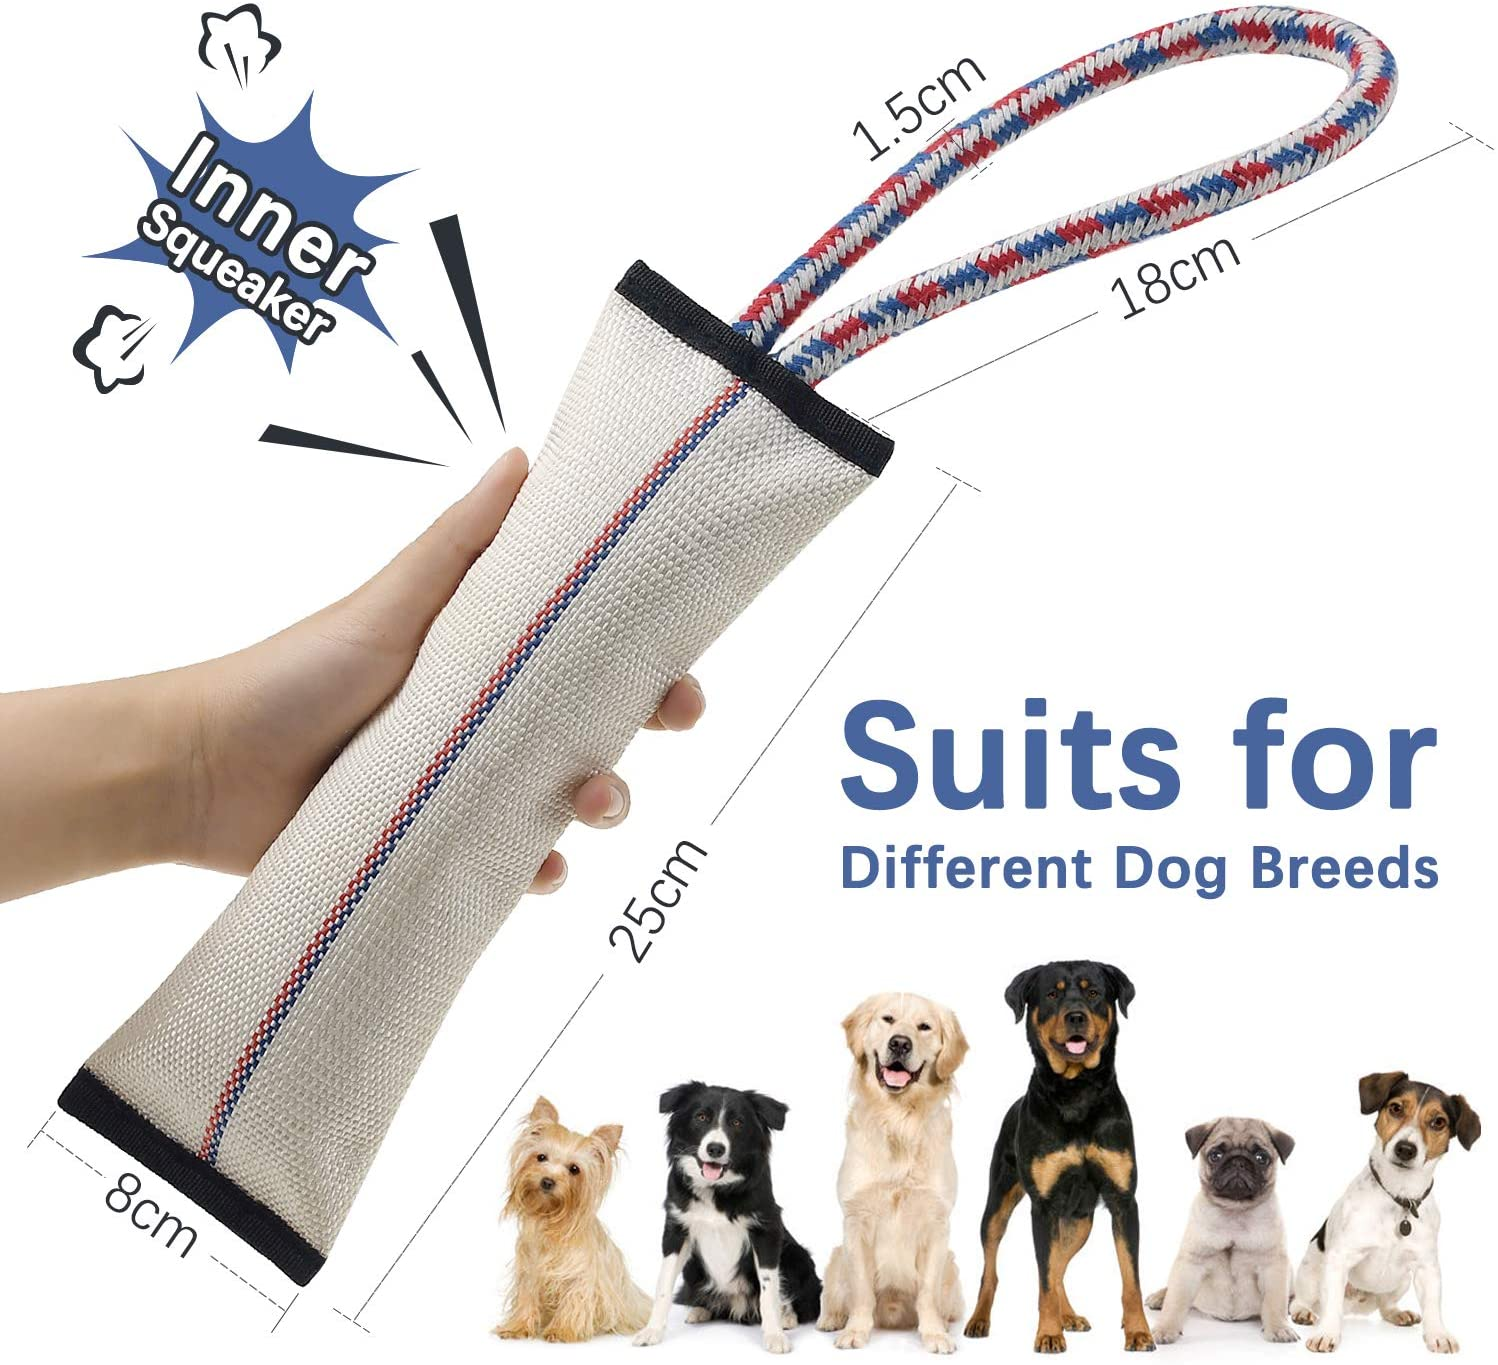 Tough Dog Toys for Aggressive Chewers,Dog Chew Toys,Dog Tug Toy,Firehose Dog Toys,Interactive Dog Toys for Large Dogs,Dog Squeaky Toys with Strong Cotton Rope Handle,Pet Toys for Small Dog Toys Pack 2